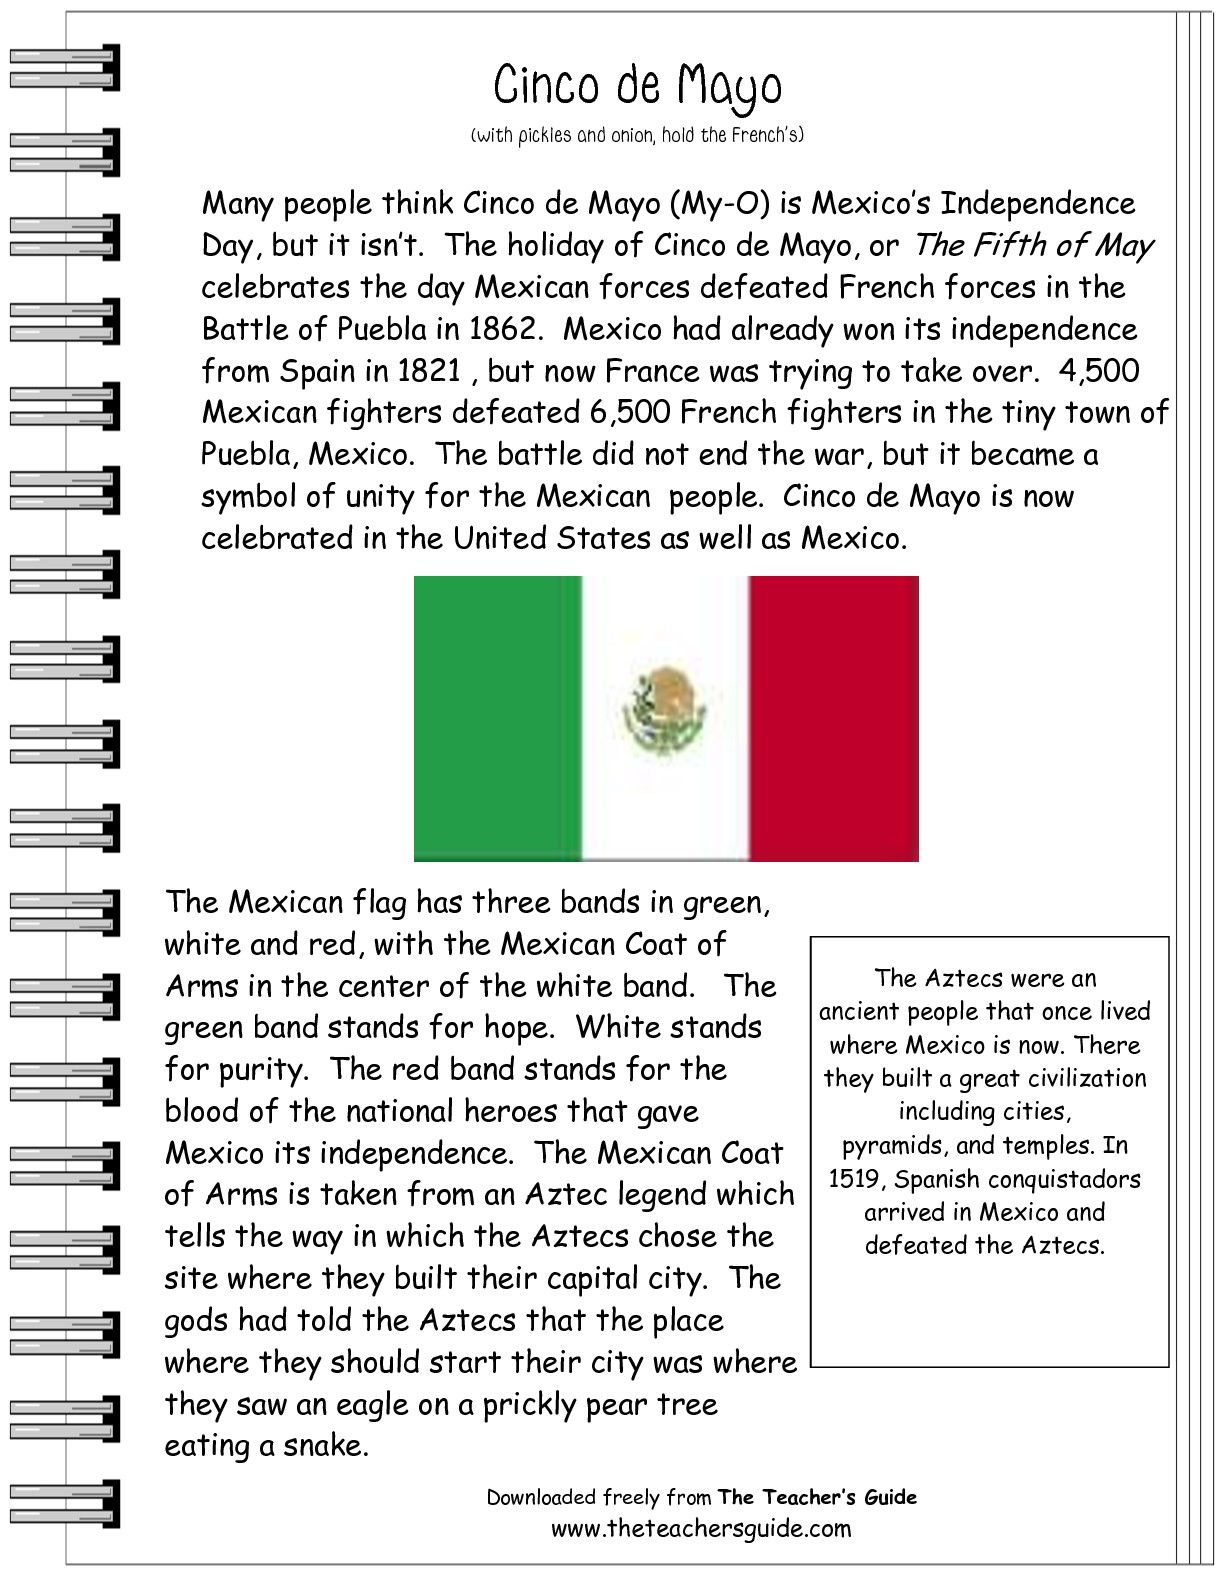 worksheet Spanish Reading Comprehension Worksheets cinco de mayo comprehension worksheet activities for worksheetsreading worksheetsspanish